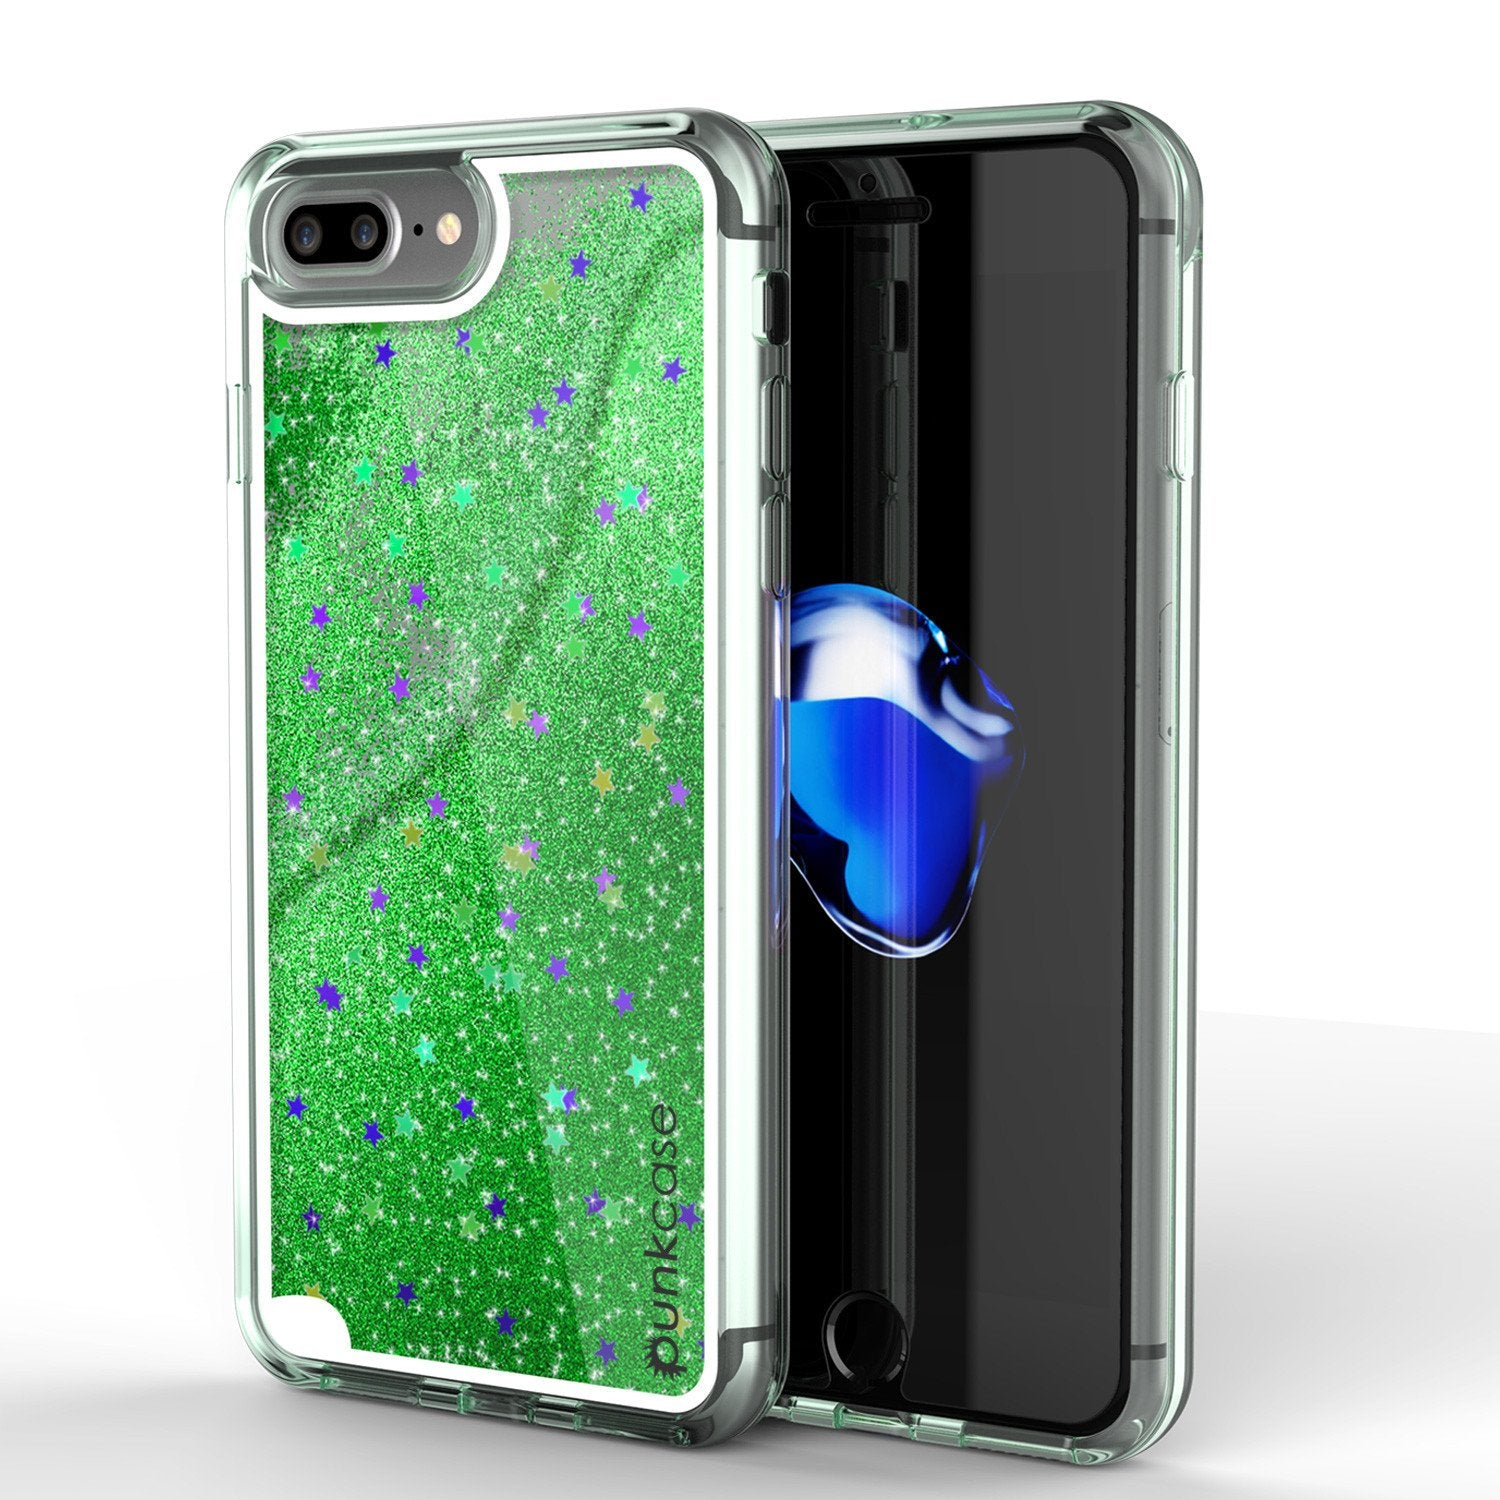 iPhone 7 Plus Case, Punkcase [Liquid Green Series] Protective Dual Layer Floating Glitter Cover with lots of Bling & Sparkle + 0.3mm Tempered Glass Screen Protector for Apple iPhone 7s Plus